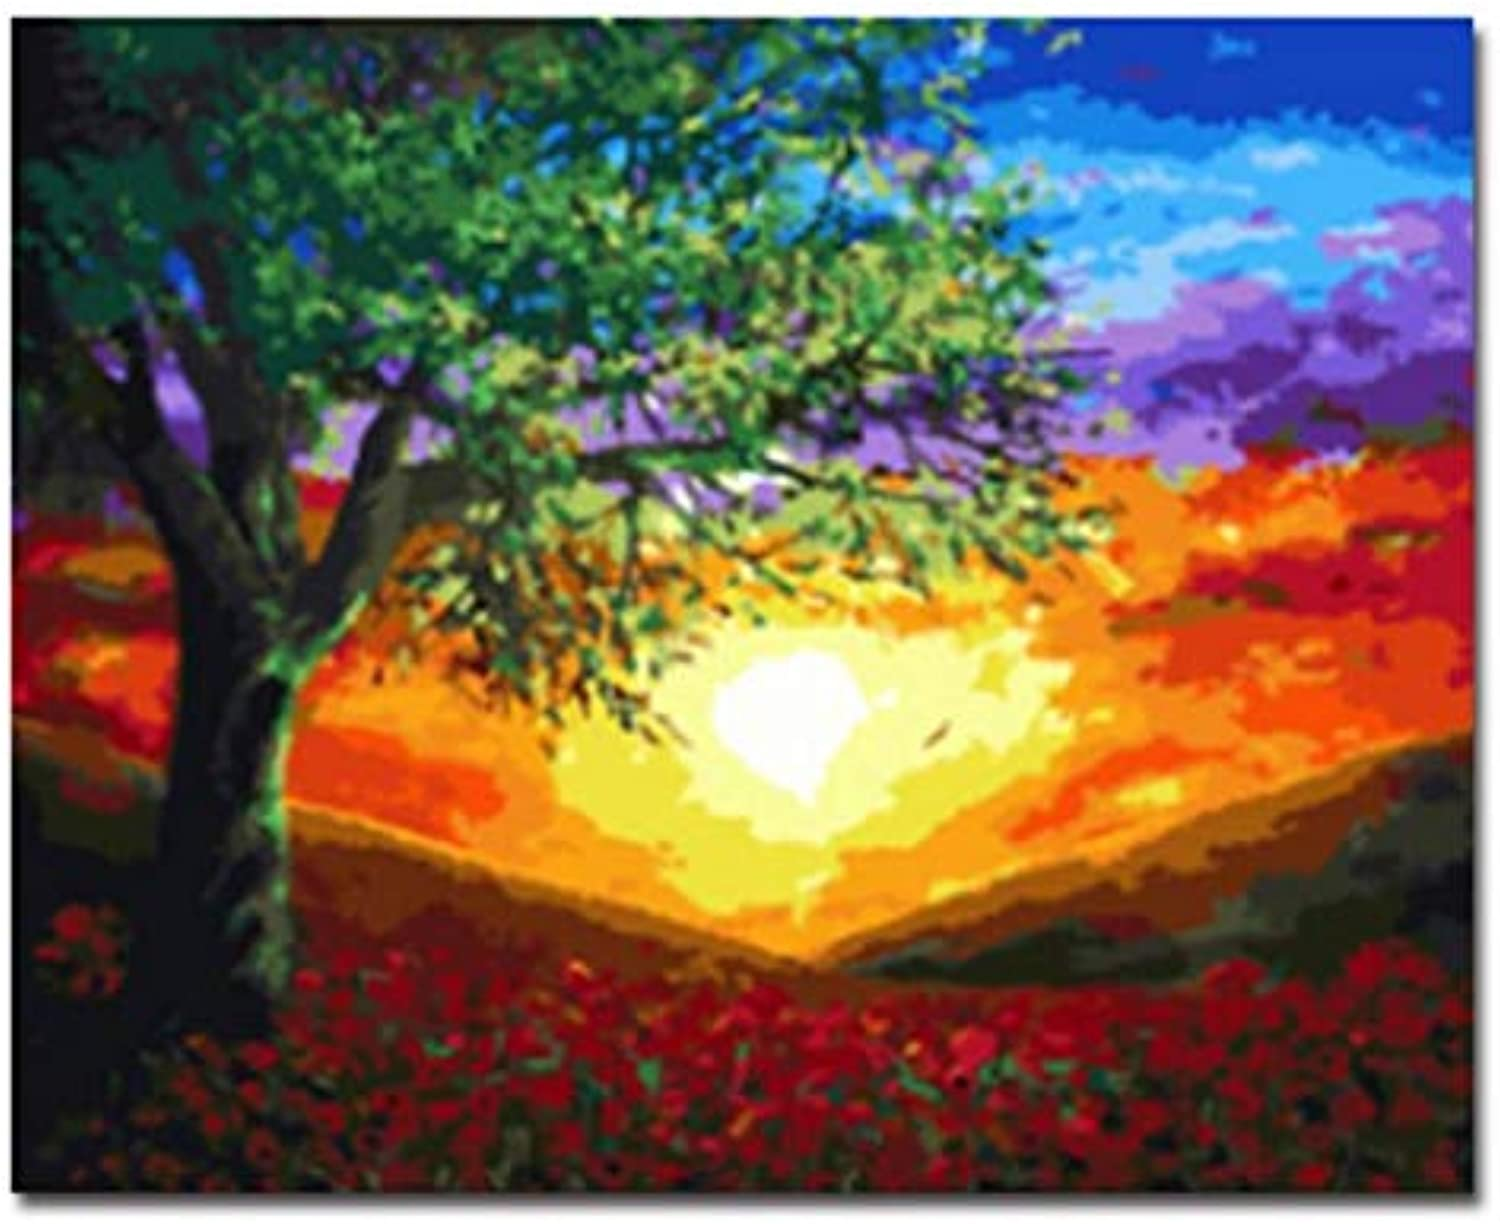 CAYYOU DIY ramed Landscape Picture Oil Painting By Numbers Painting&Calligraphy Home Decor Wall Art, Framed, 50x60cm